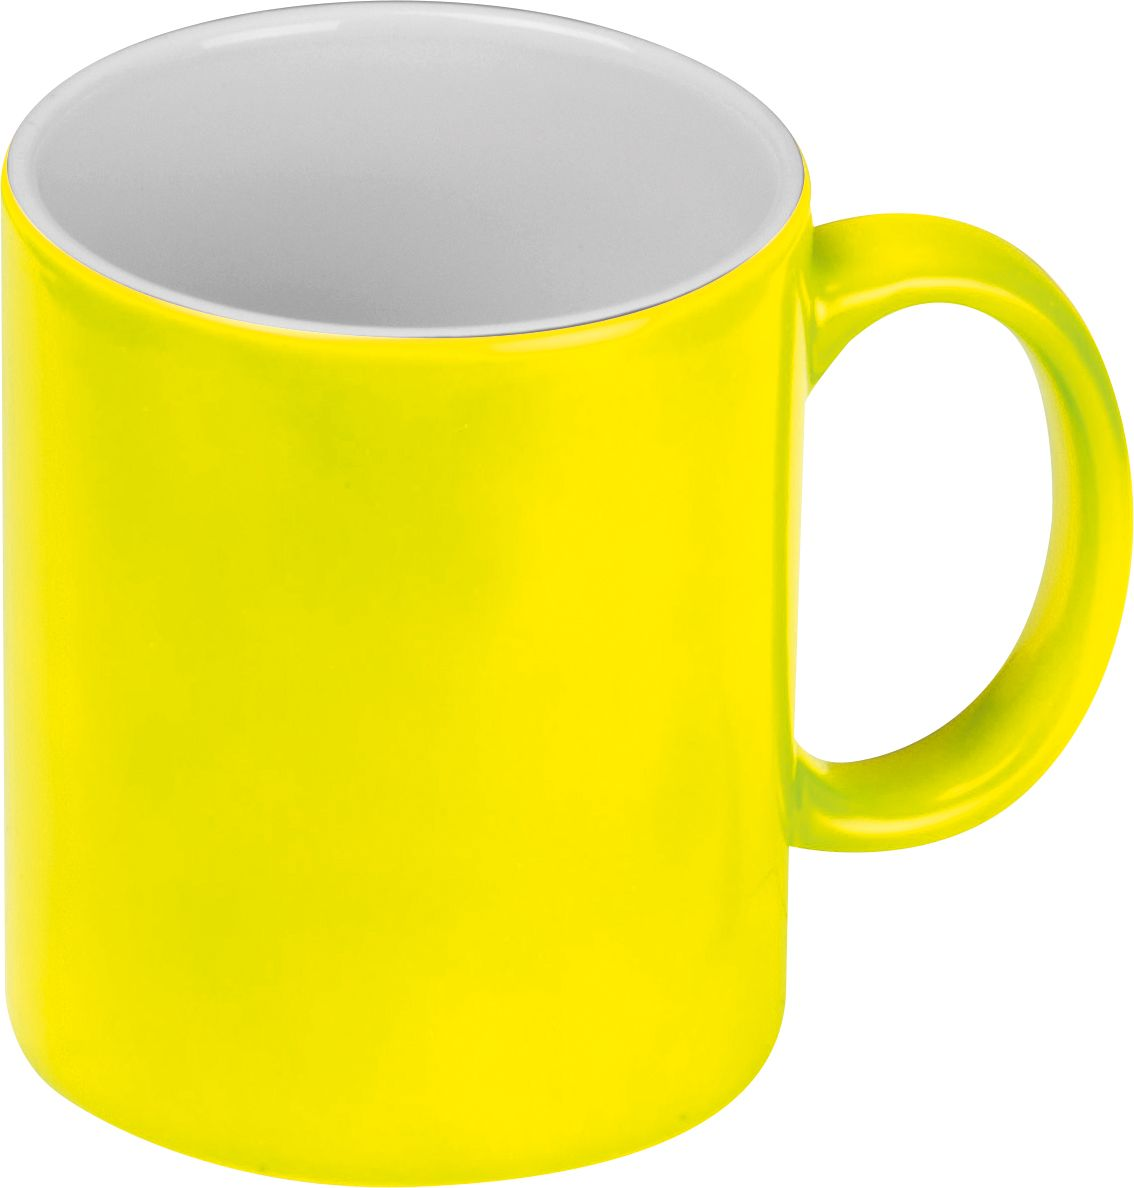 Neon Sublimation mug | iMi Partner a s  - The search engine